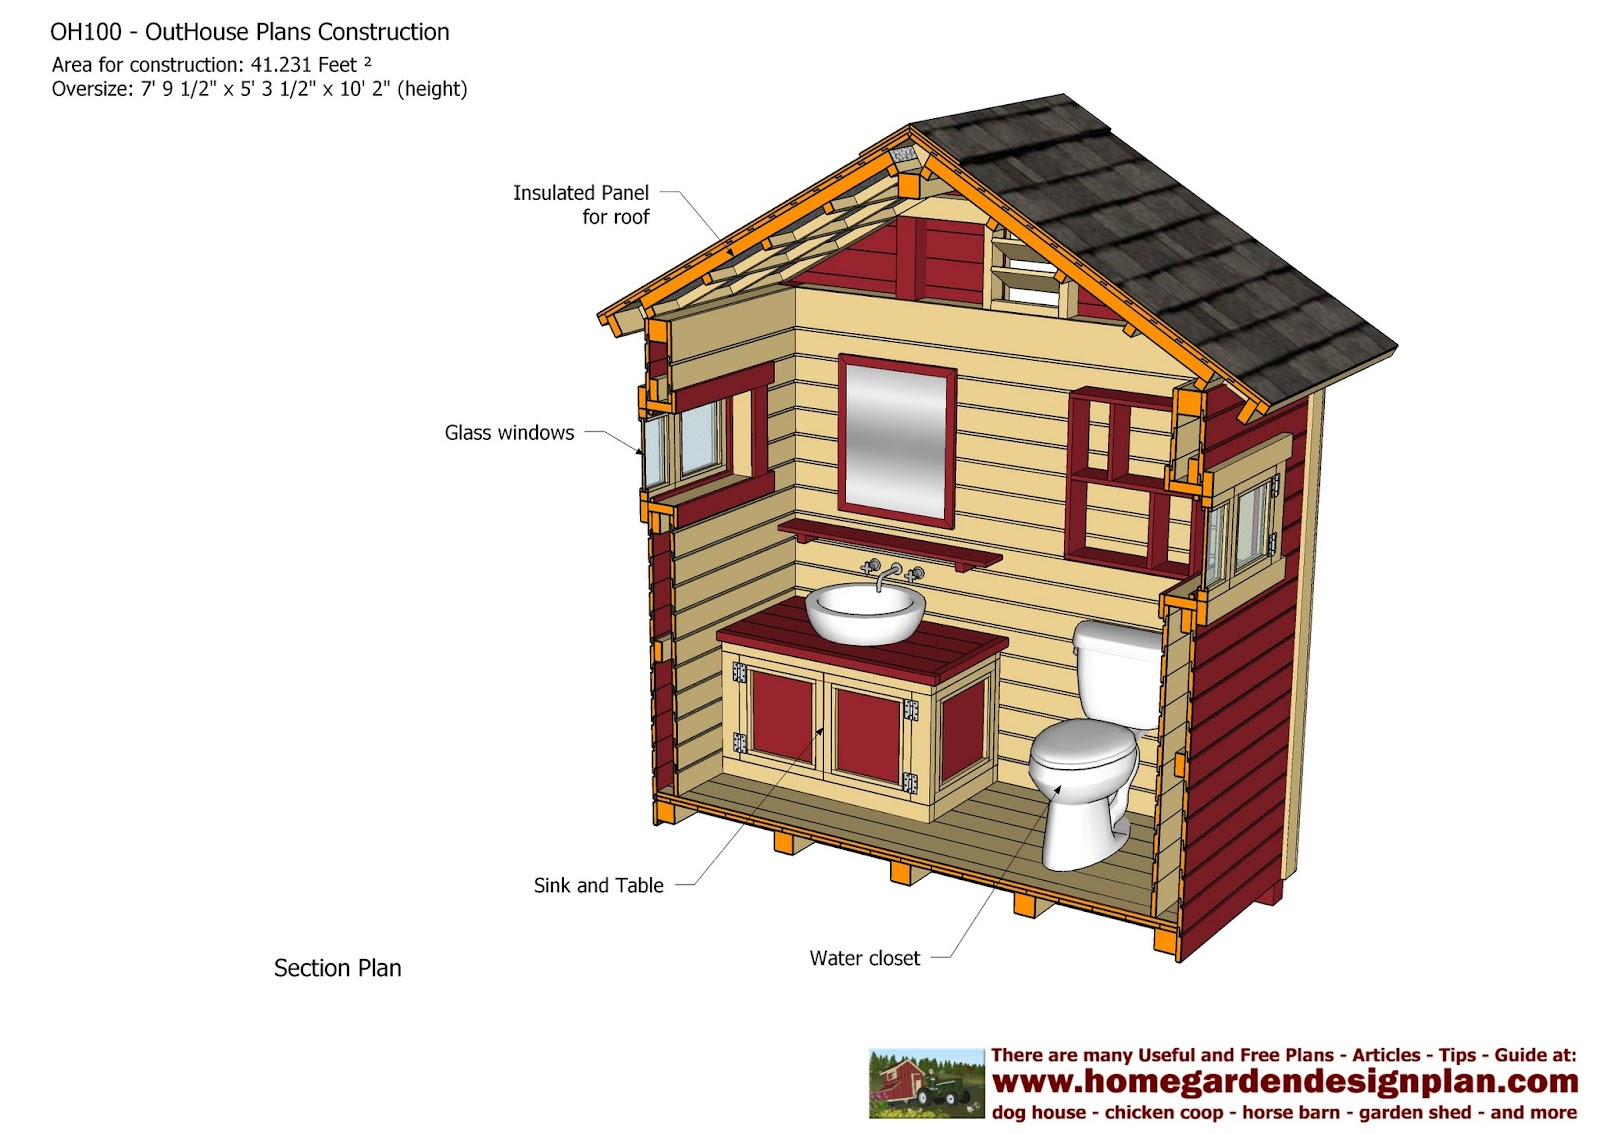 23 Outhouse Blueprints Ideas House Plans 46630